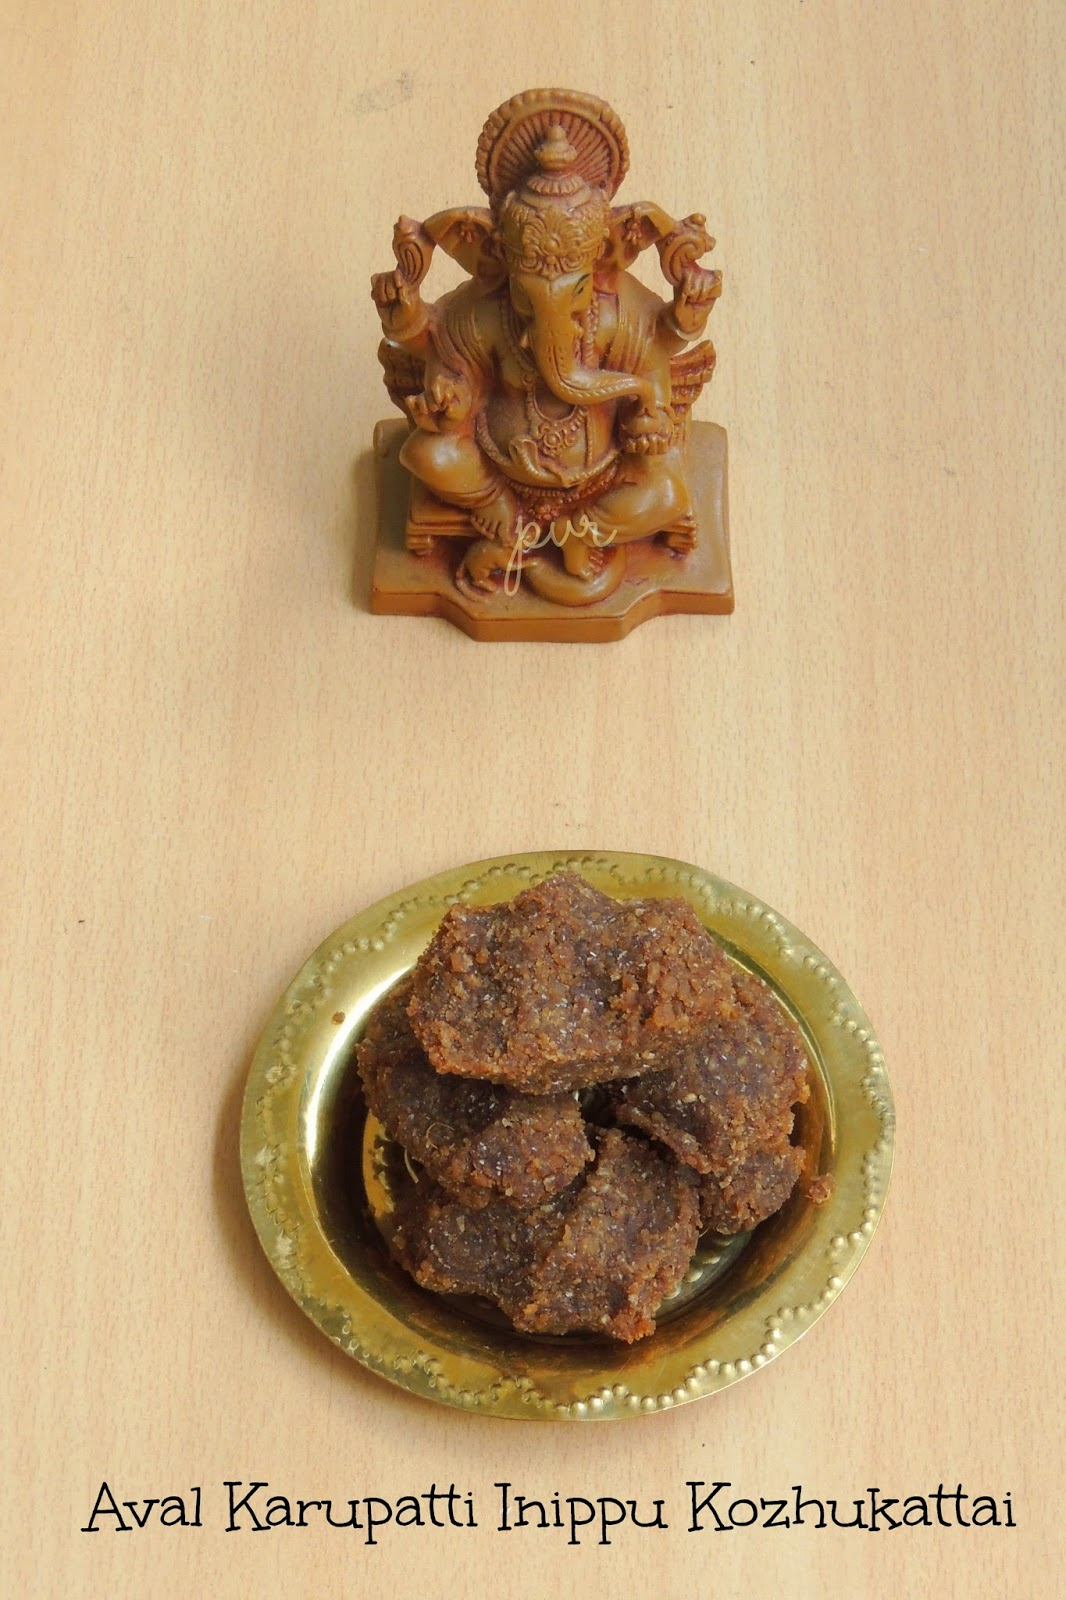 red rice palm jaggery sweet kozhukattai, sweet rice flakes dumplings